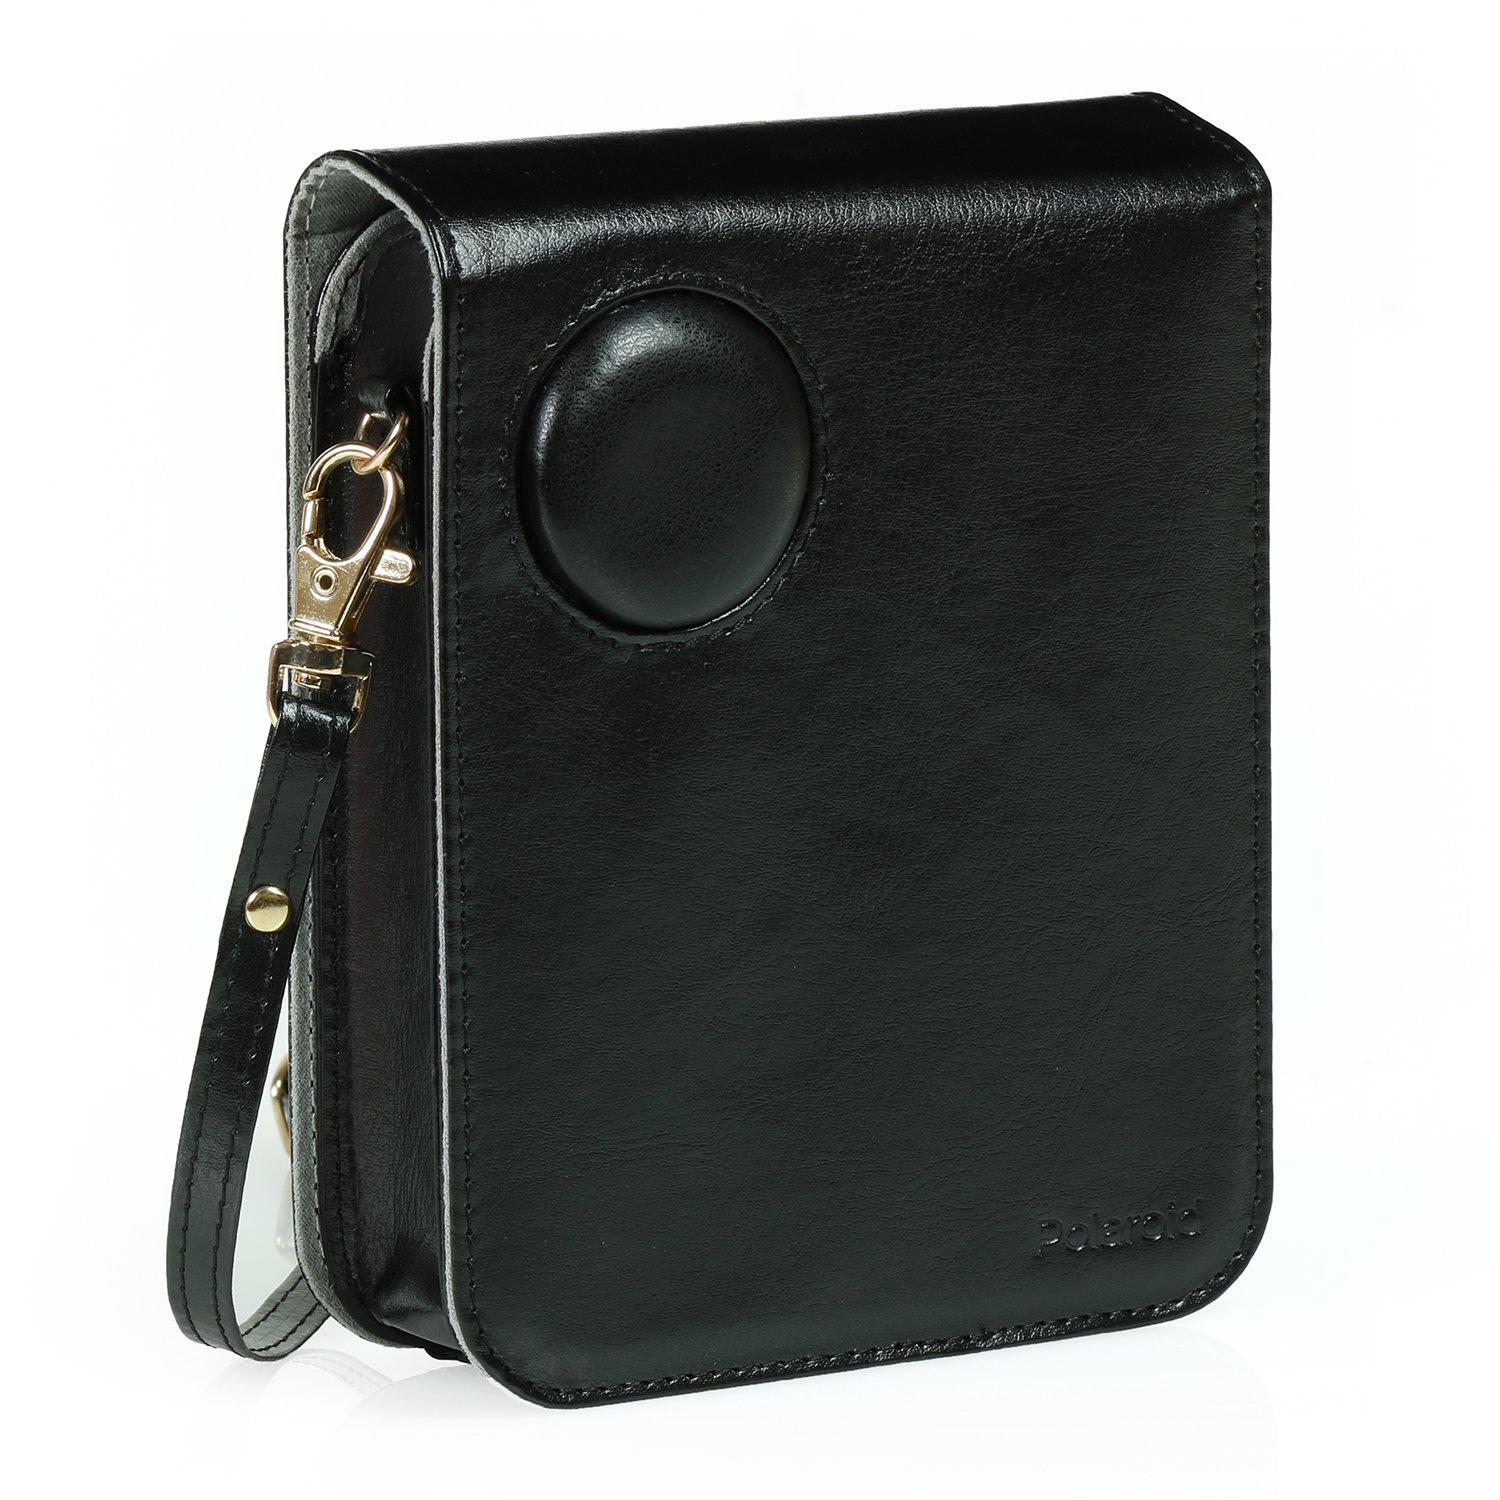 Polaroid Leatherette Case (Black) for Polaroid POP Instant Print Digital Camera – The Most Stylish & Authentic Way to Protect Your Polaroid POP